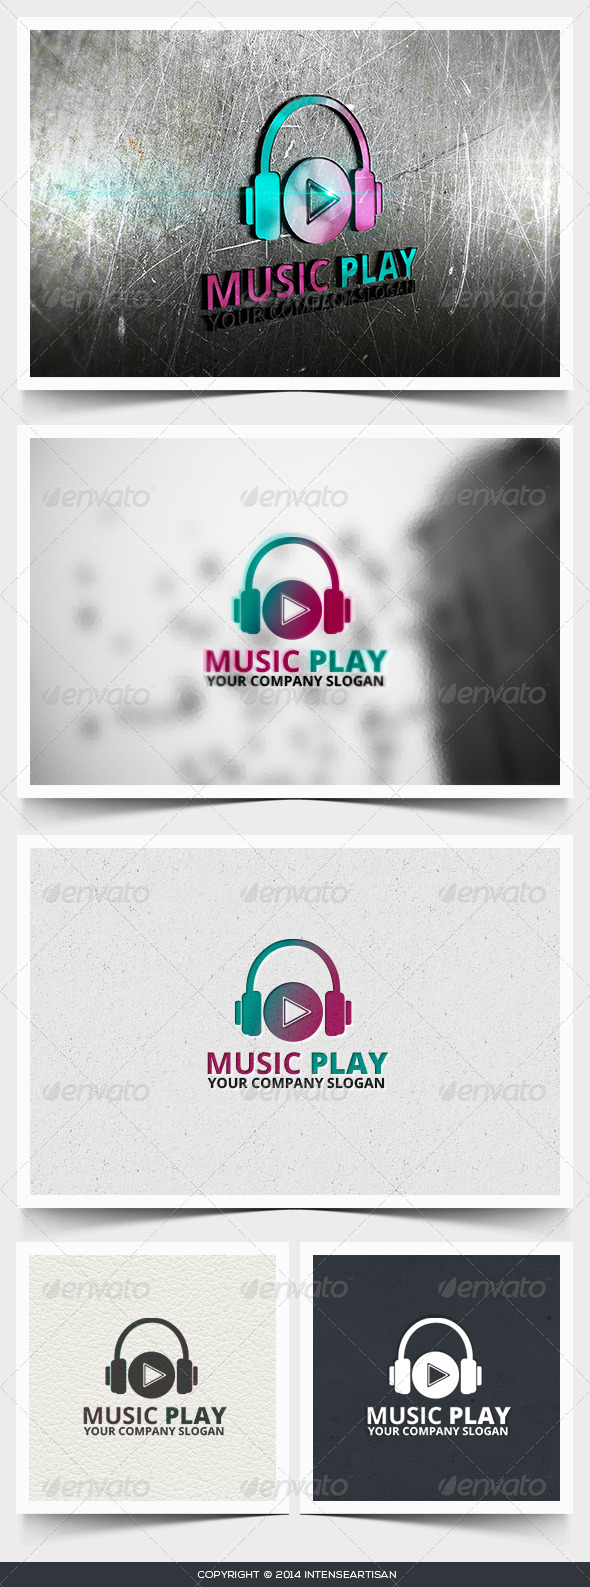 Music Play Logo Template - Objects Logo Templates